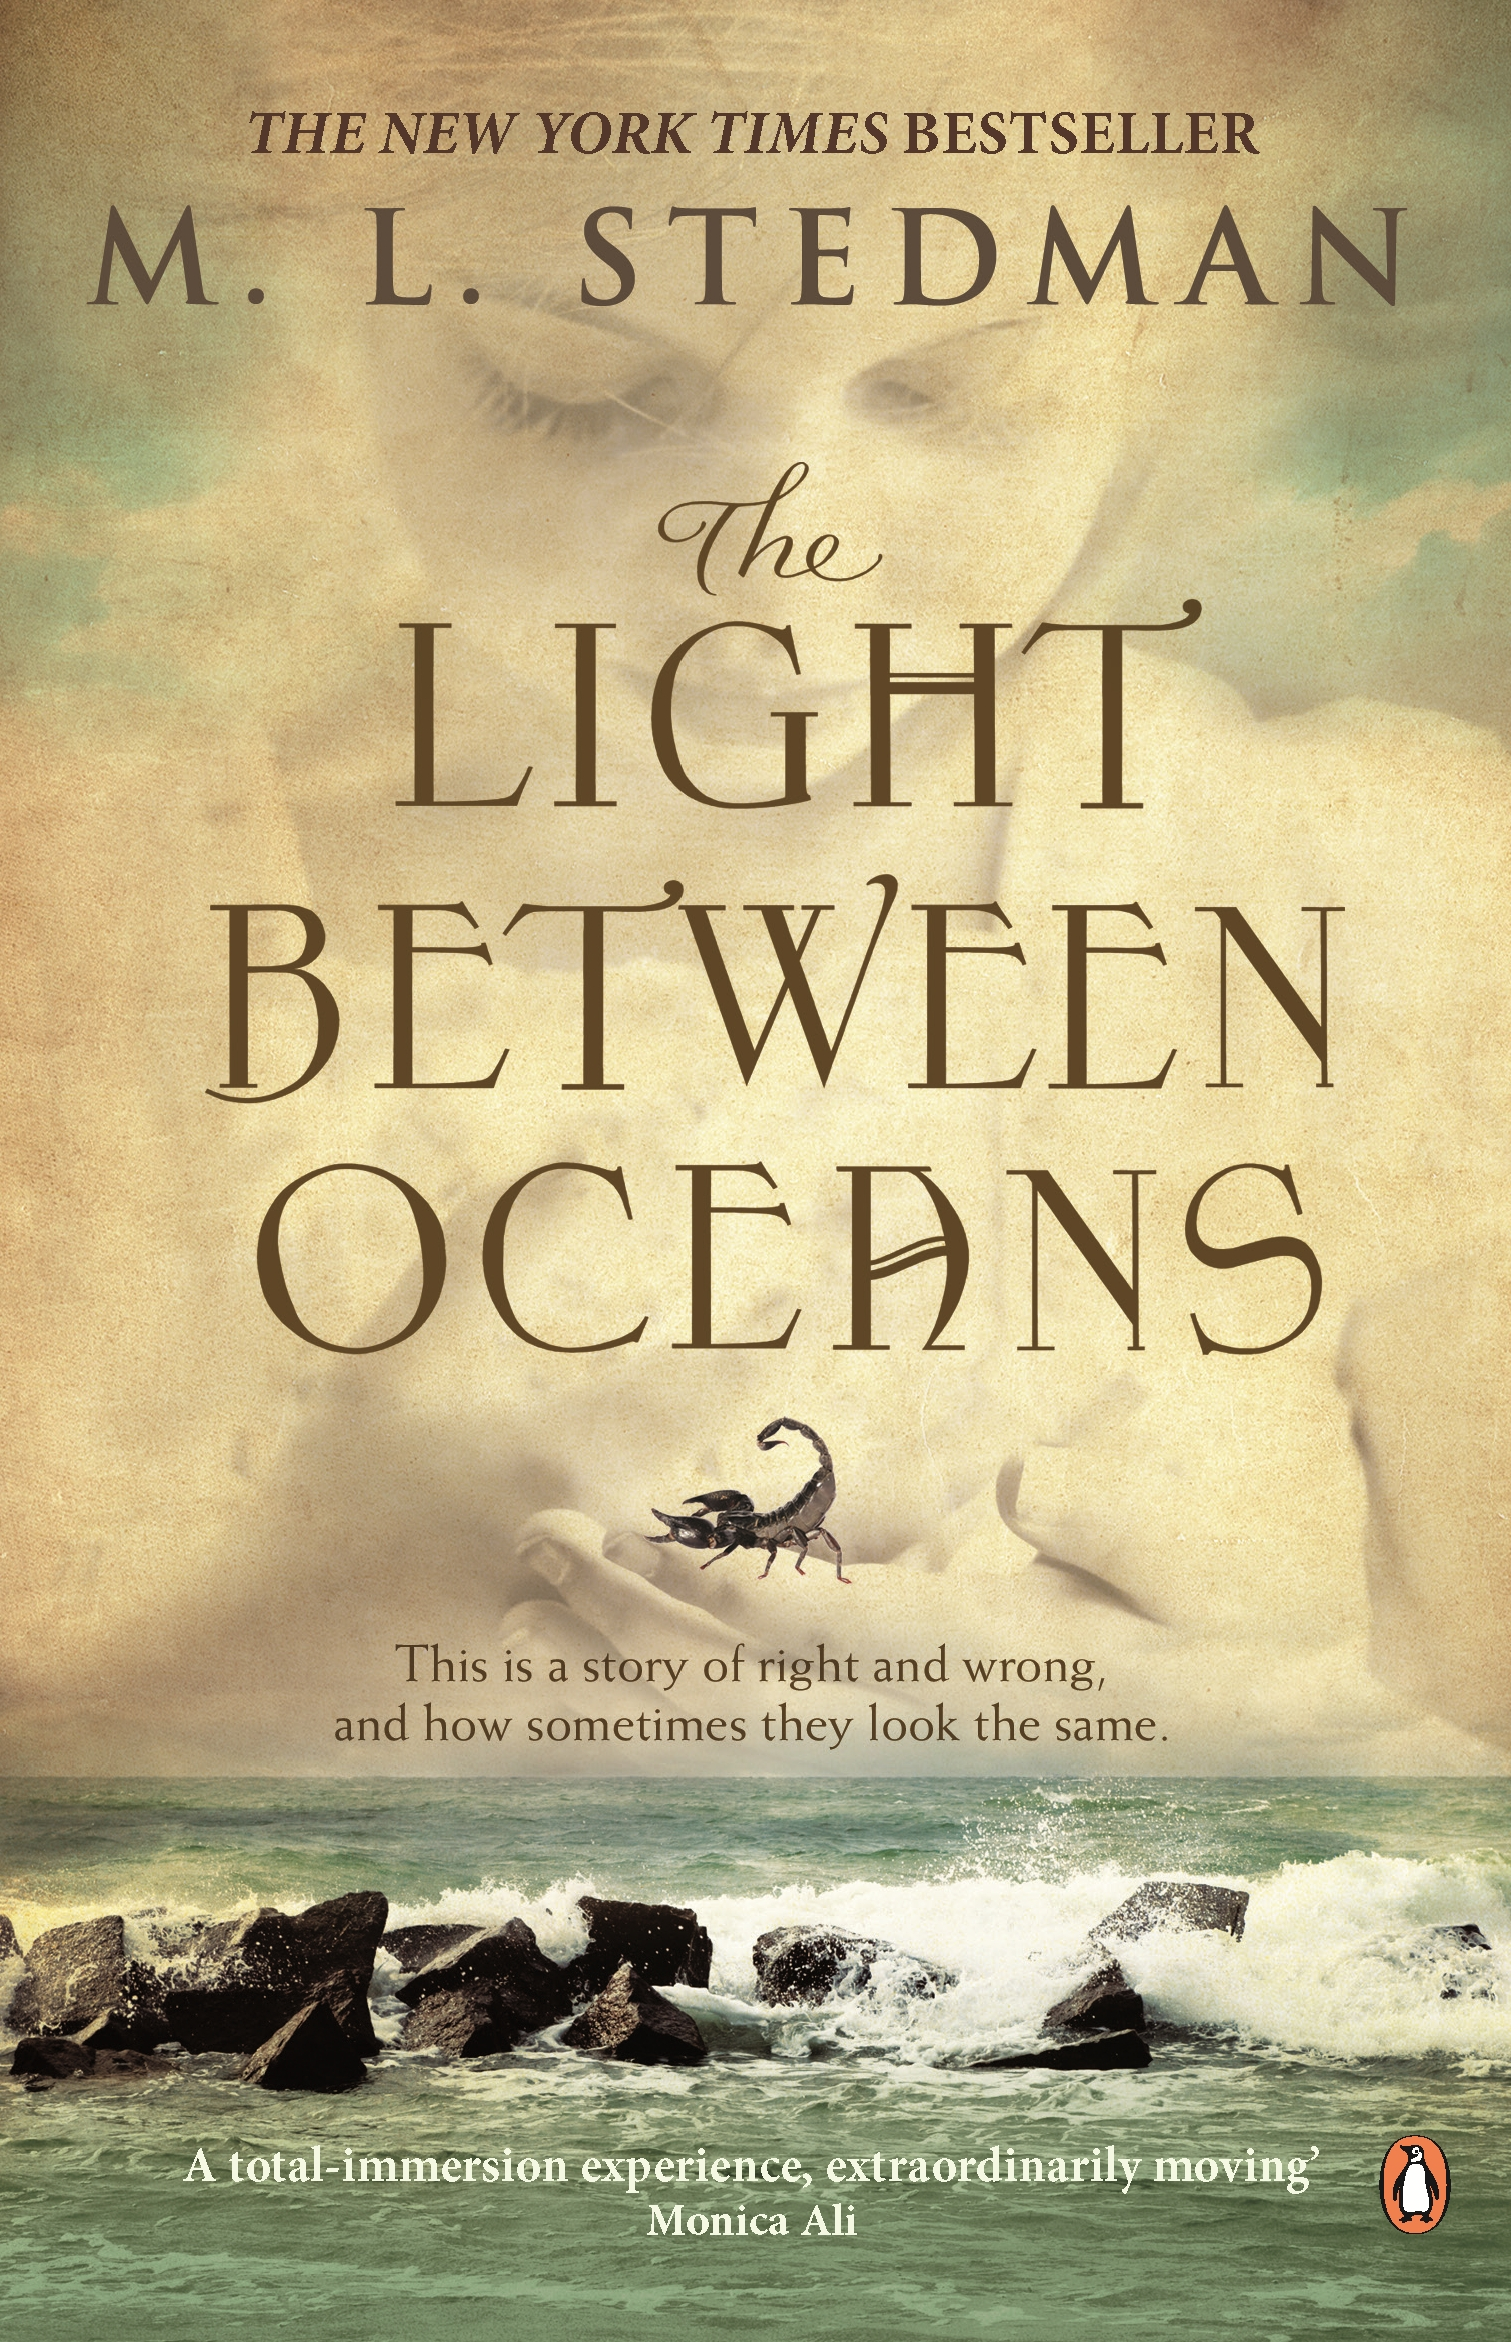 Image result for the light between oceans cover